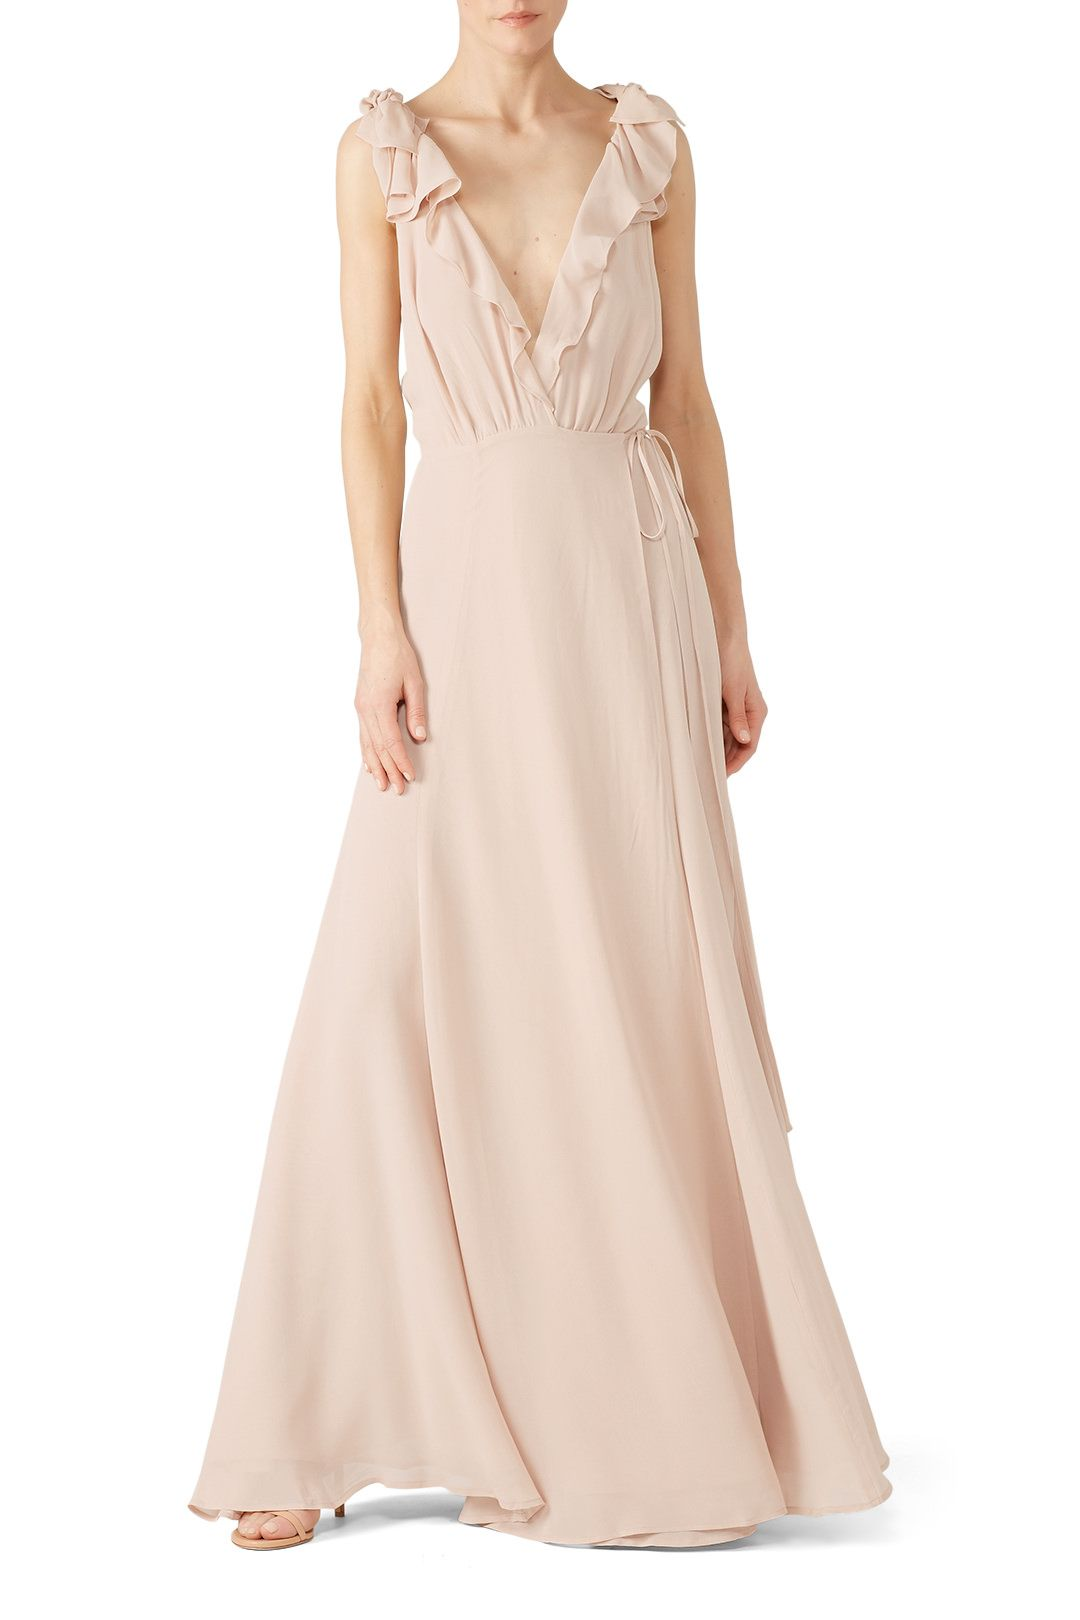 5f607dbaf Rent Champagne Peppermint Dress by Reformation for $45 - $60 only at Rent  the Runway.